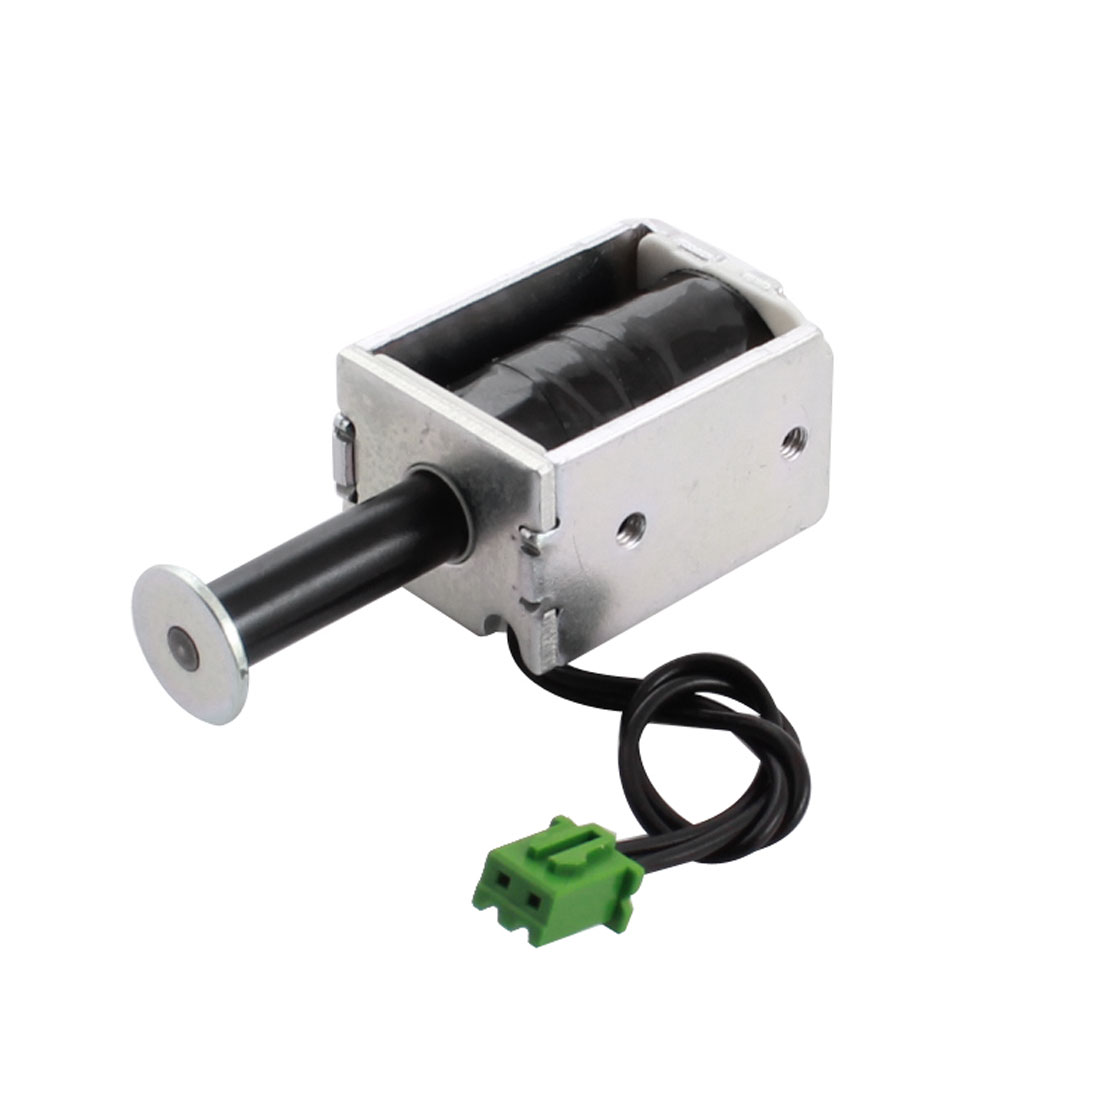 15V 0.68A 10.22W 3mm 100g 50% Push Pull Type Open Frame Linear Motion DC Solenoid Electromagnet Actuator